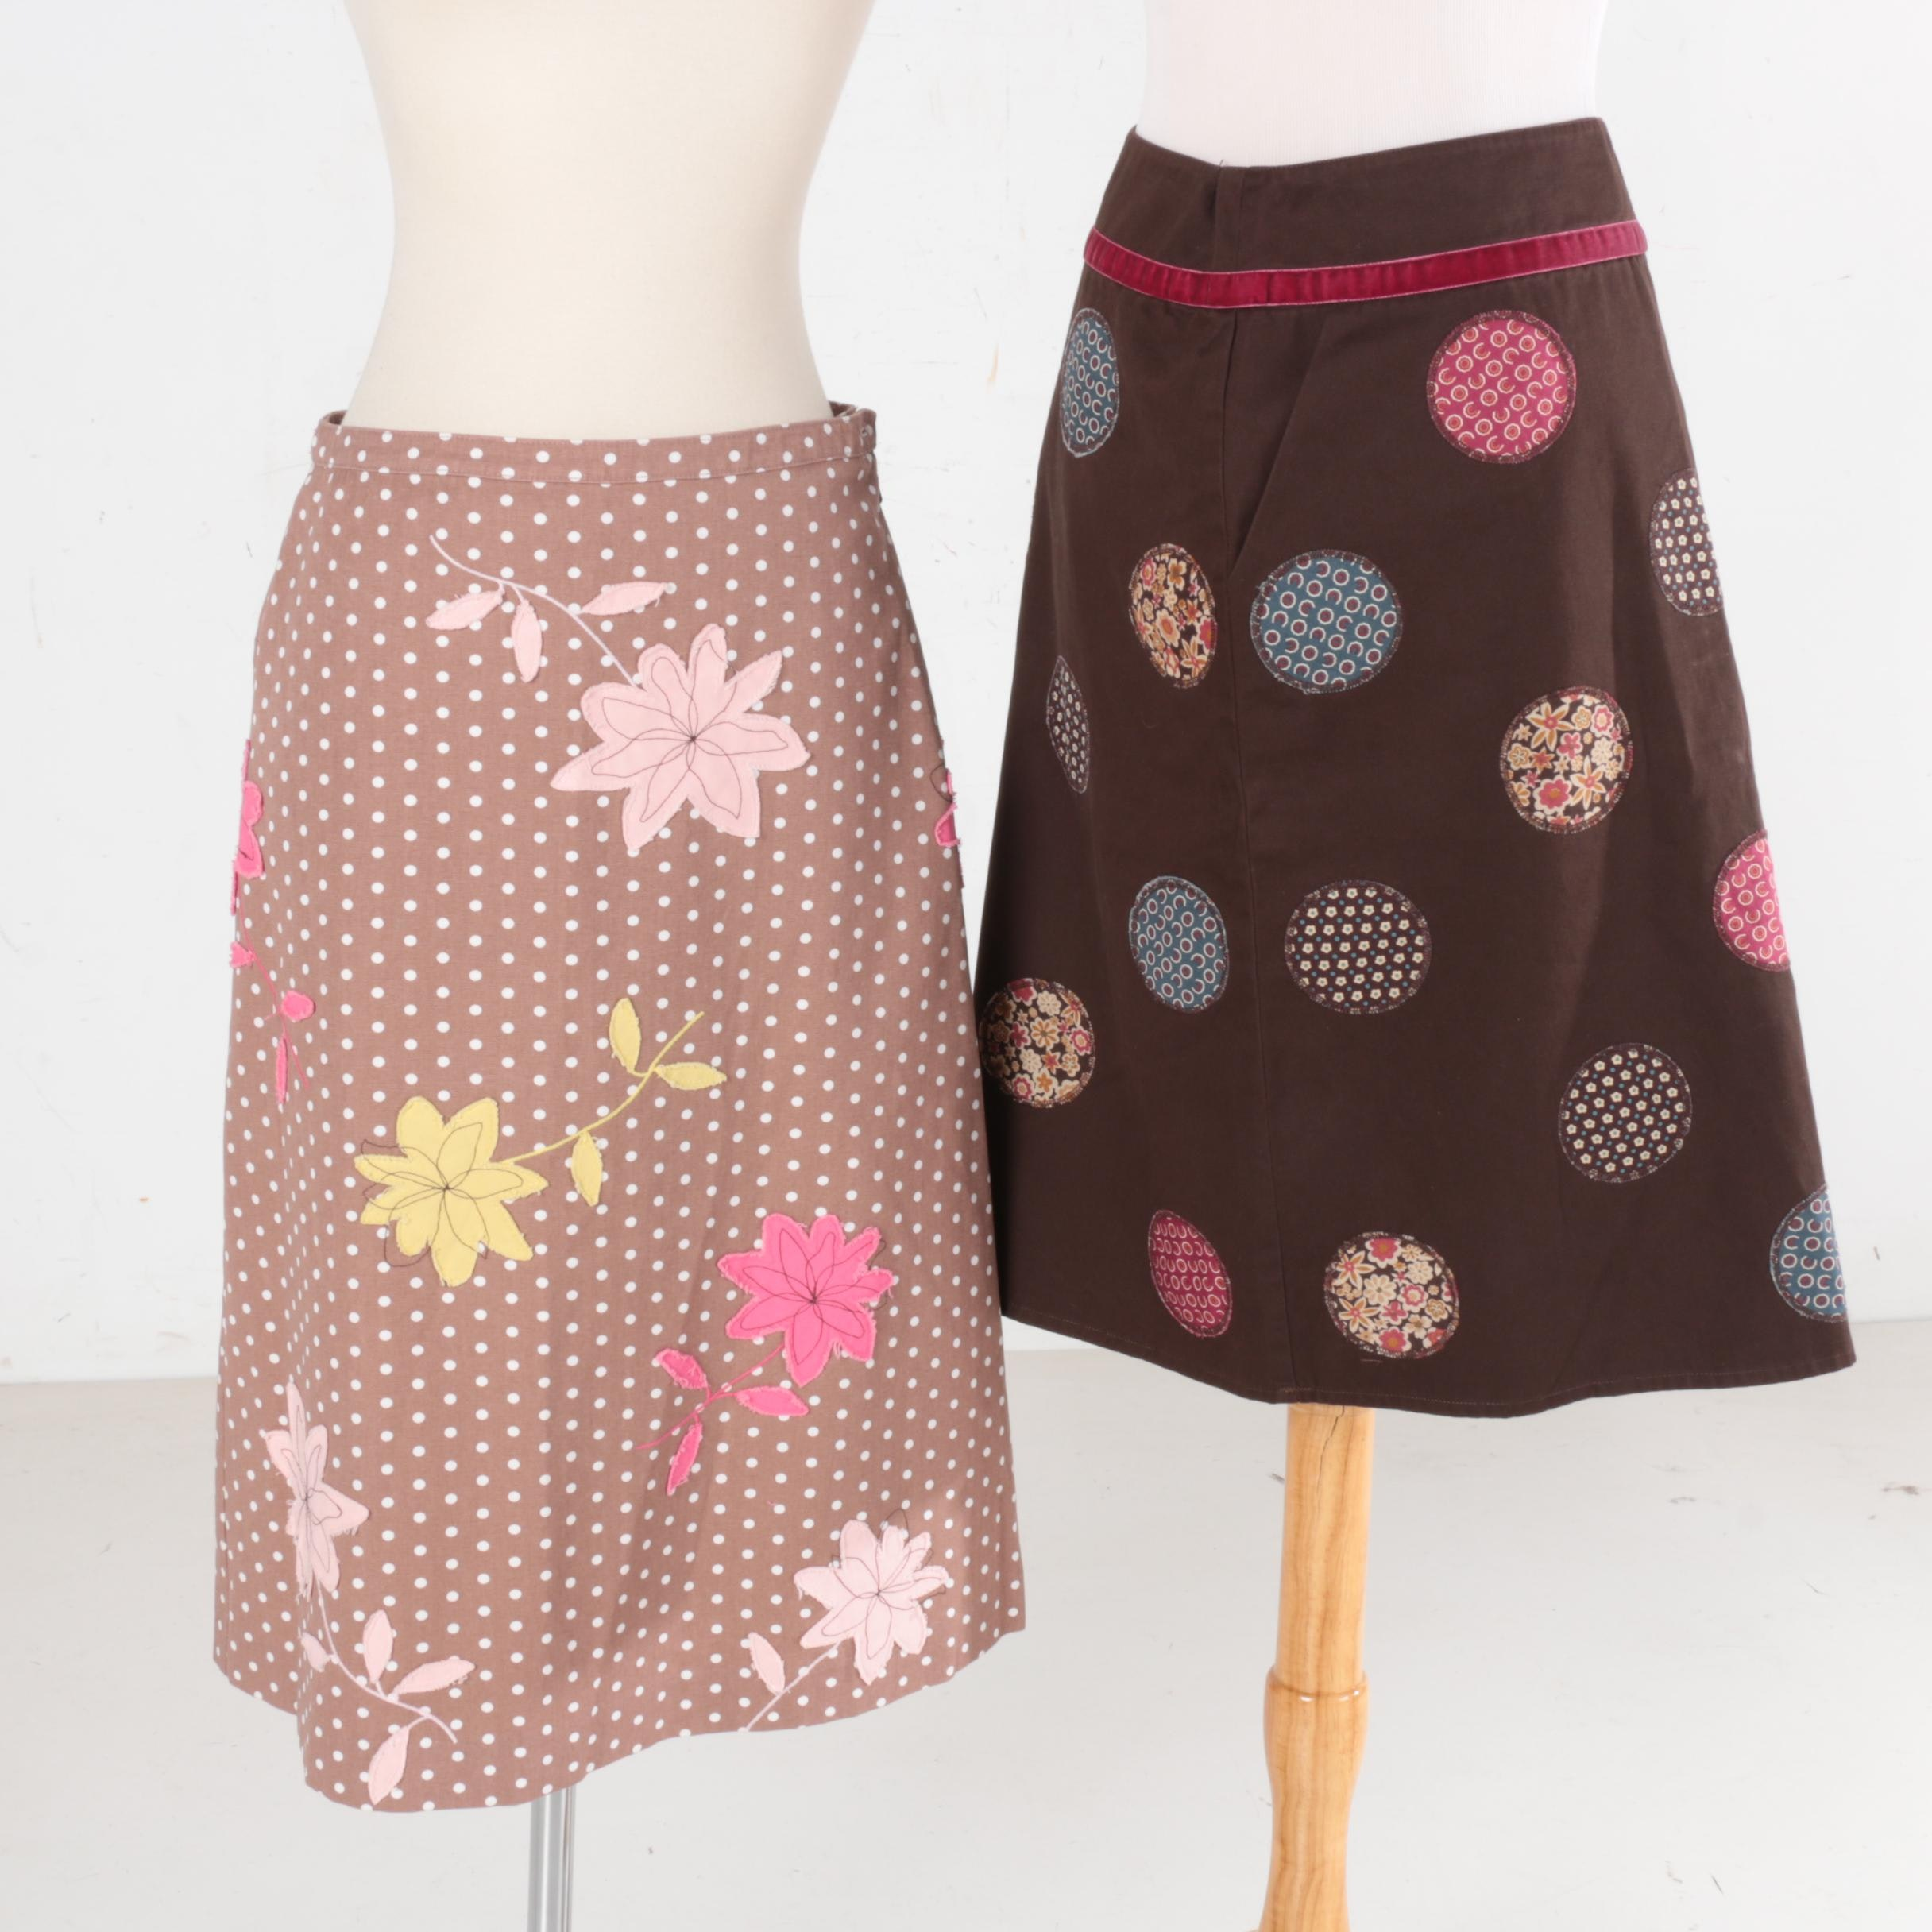 Women's Skirts From Boden